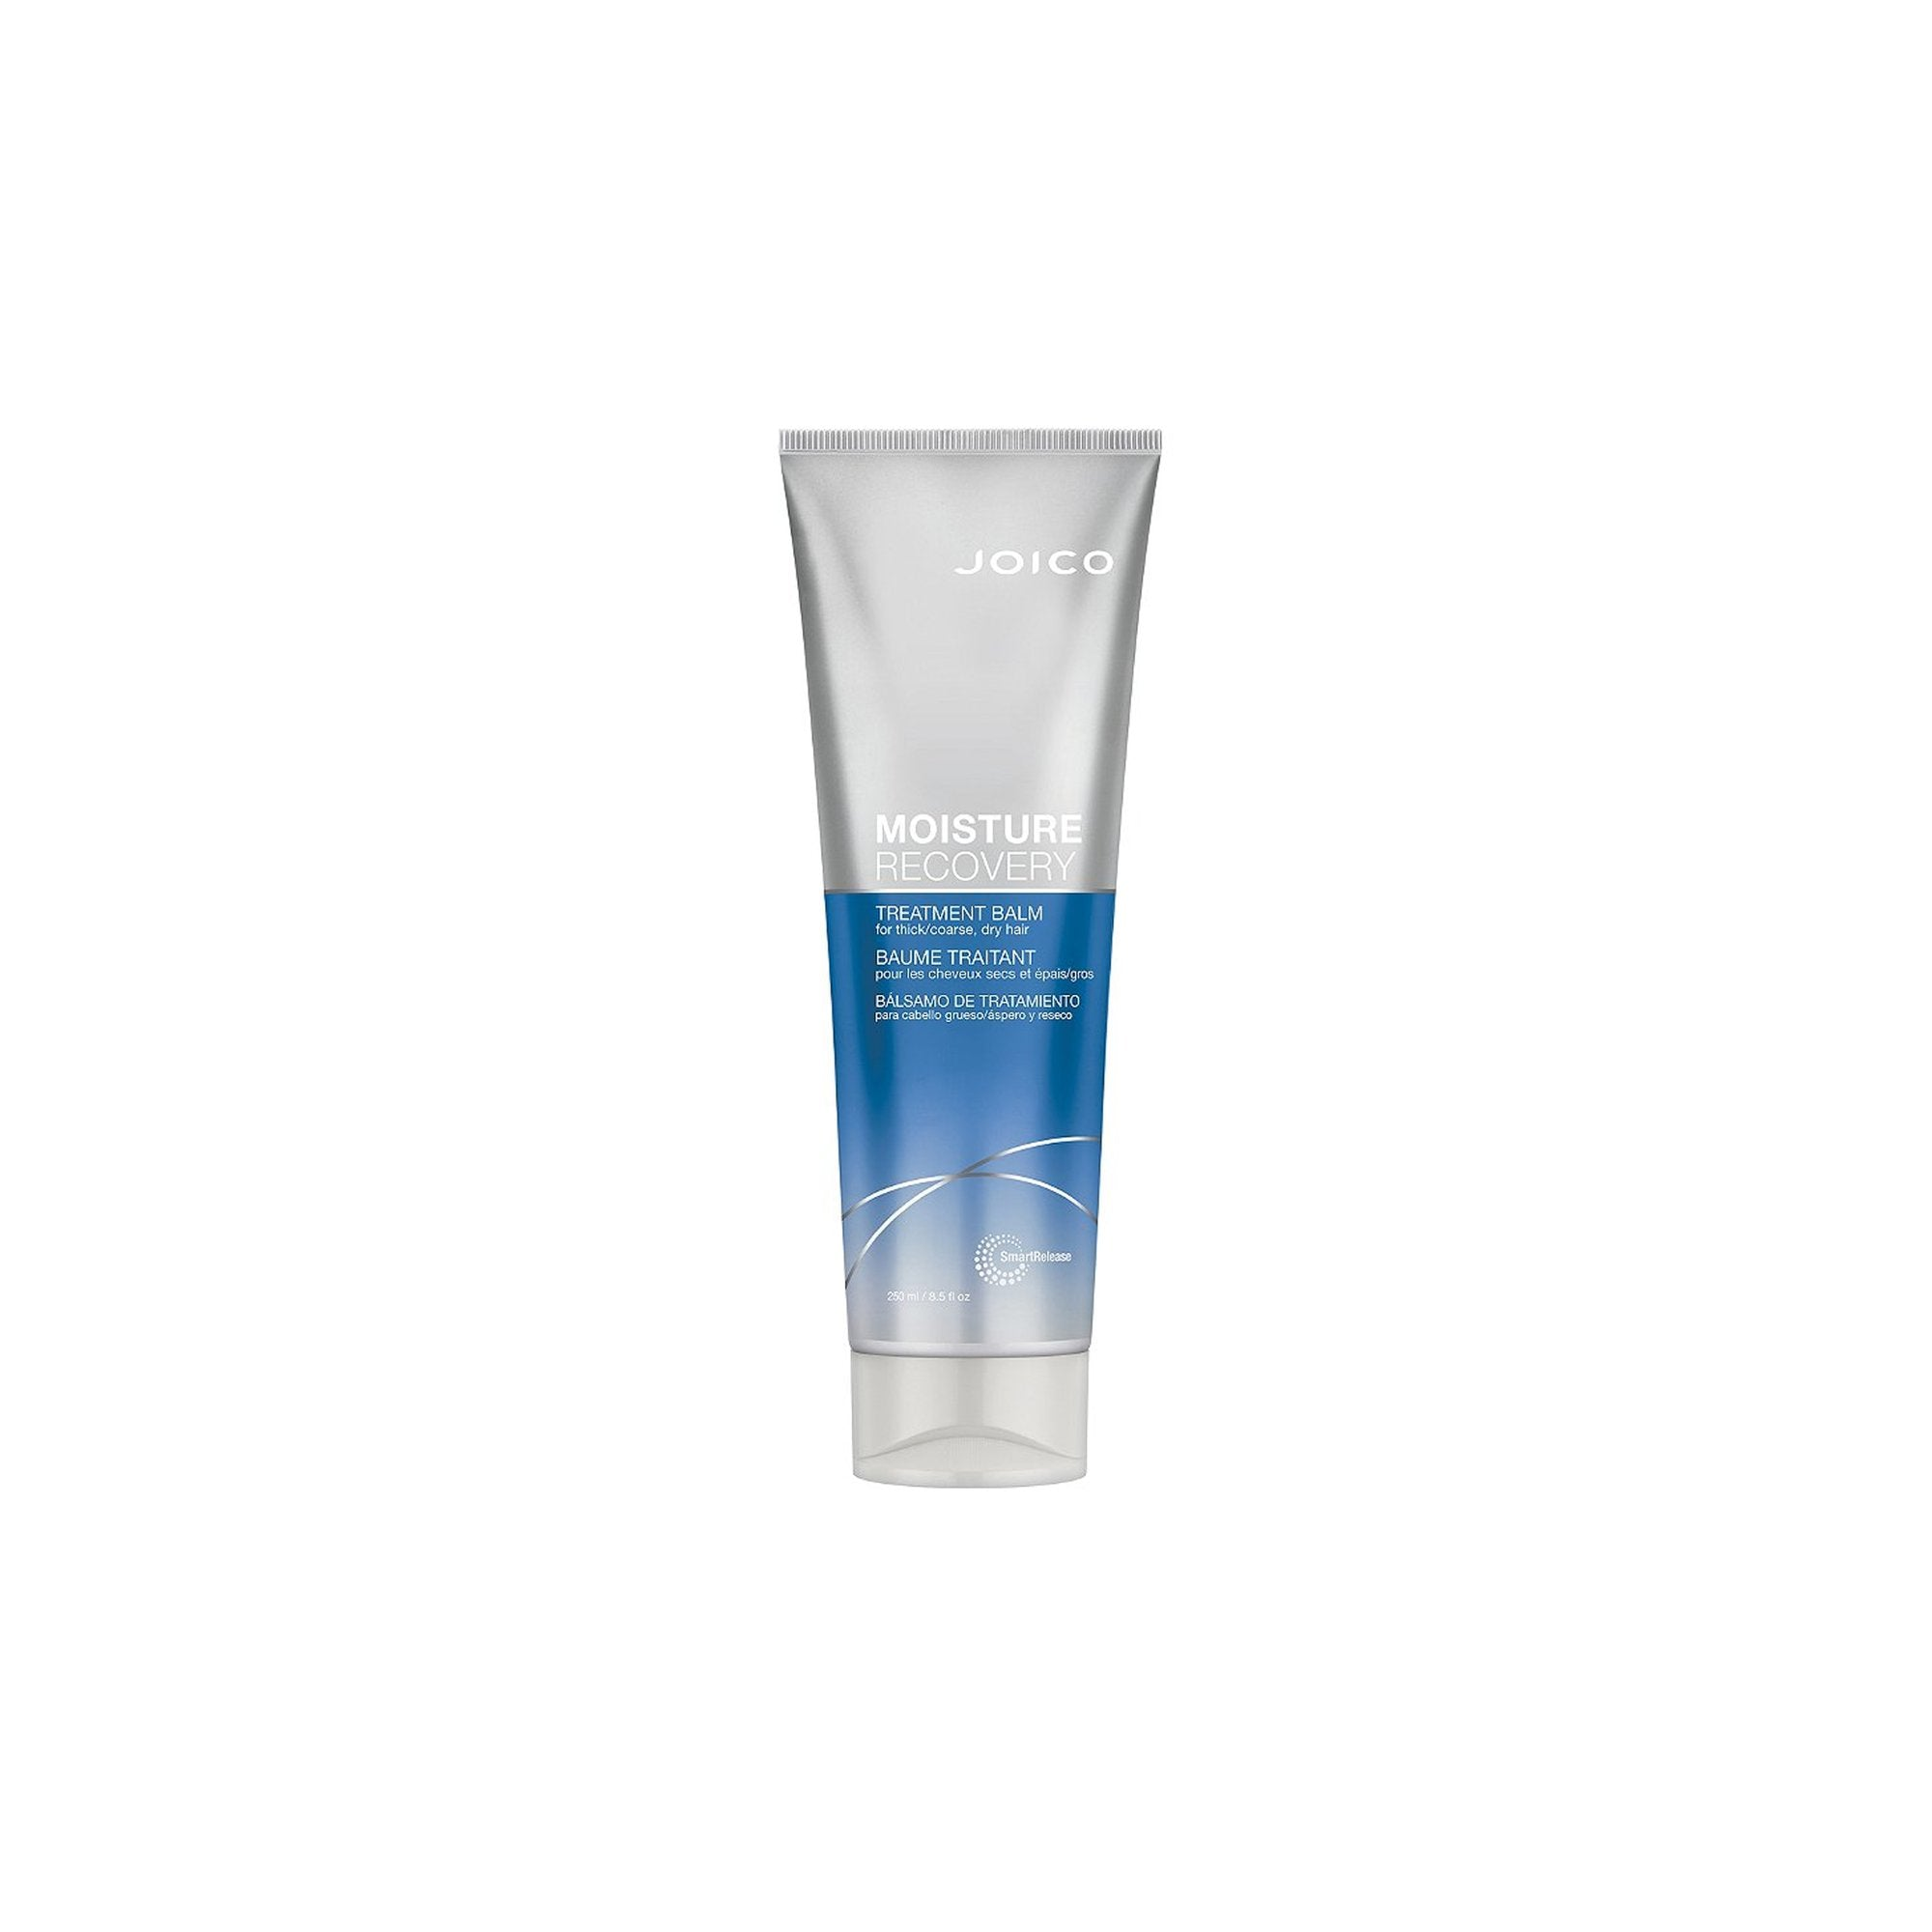 Joico Moisture Recovery Treatment Balm 250ml